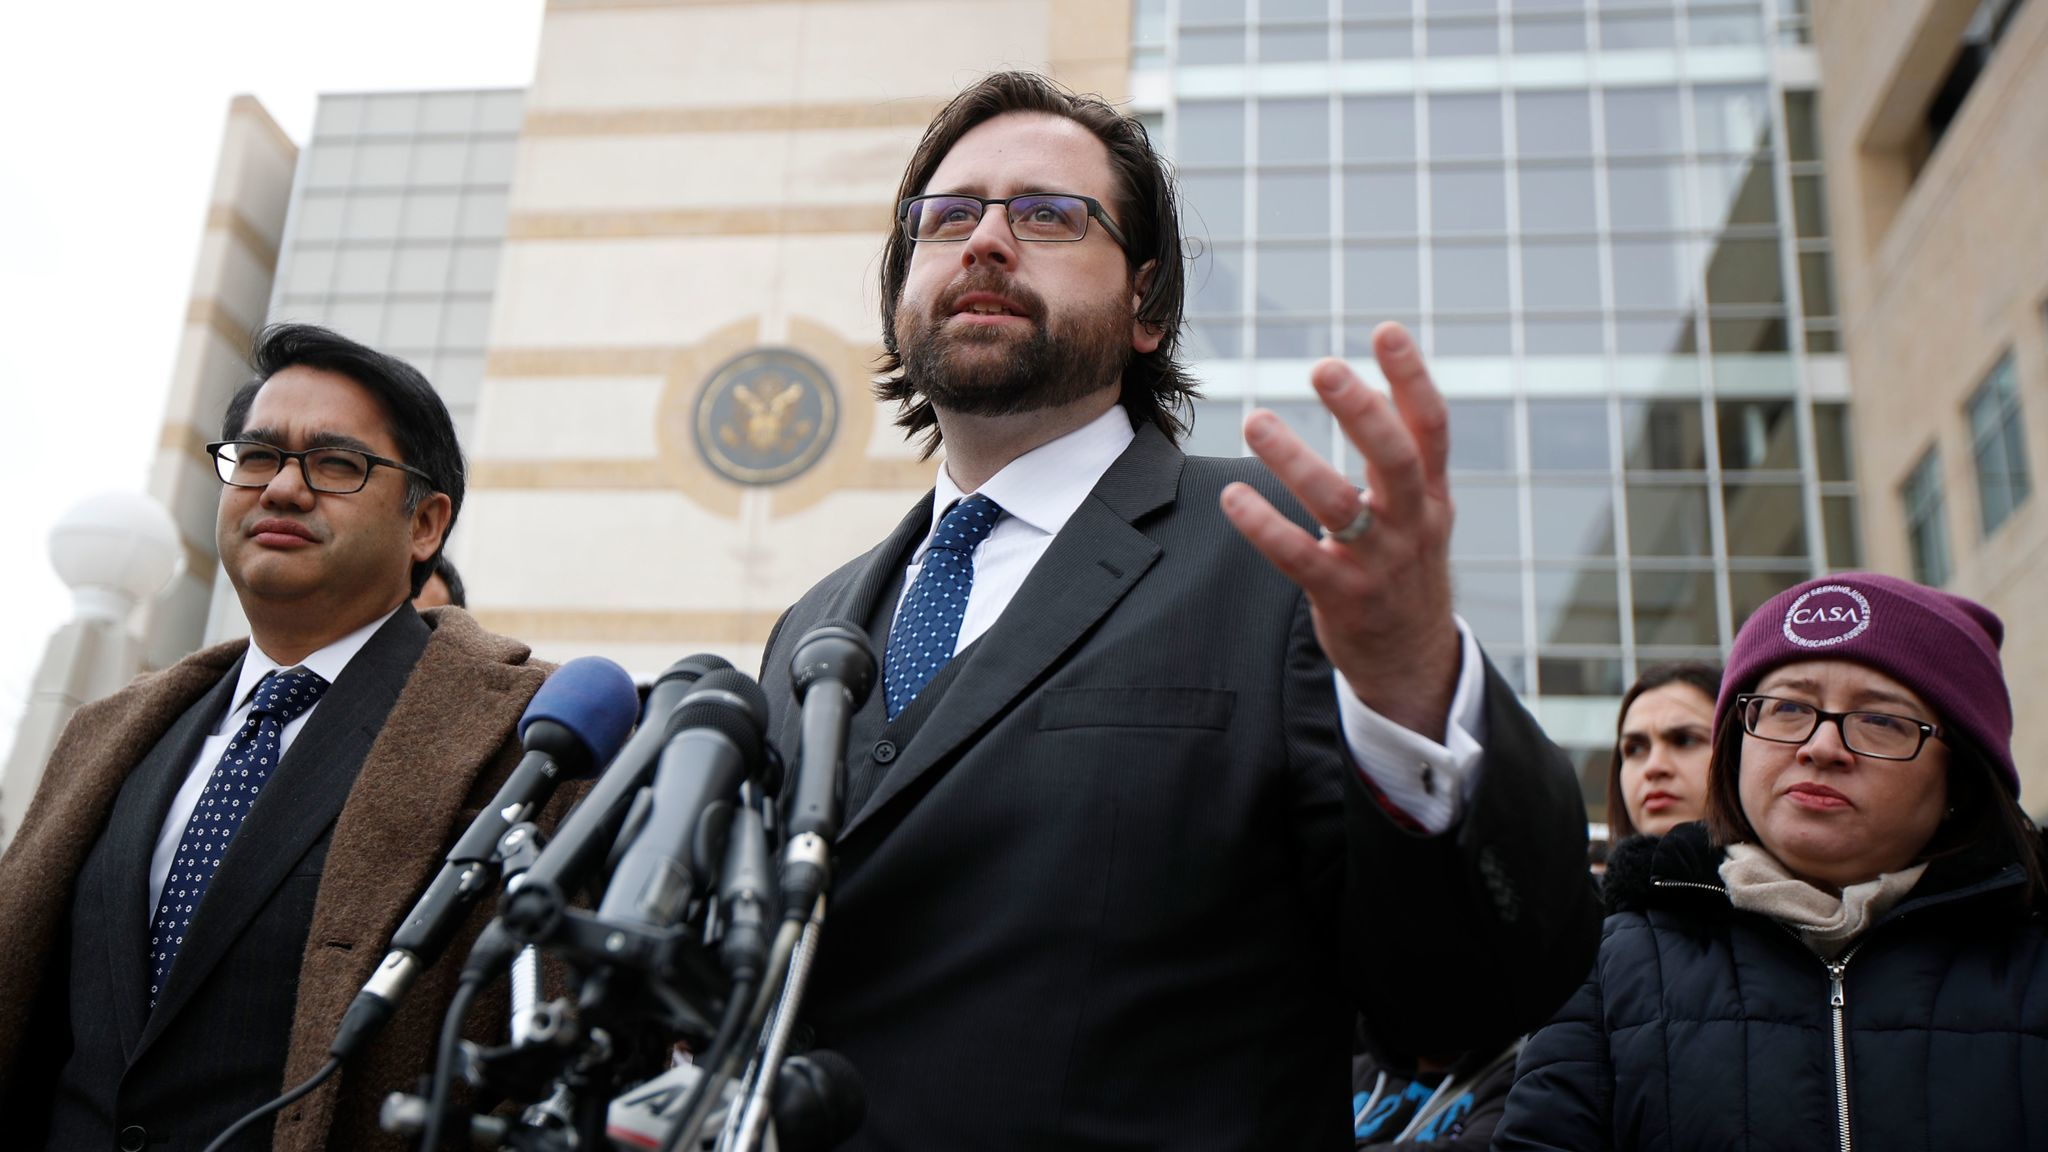 Justin Cox of the National Immigration Law Center, center, stands with Omar Jadwat of the American Civil Liberties Union outside the federal courthouse in Greenbelt, Md., after a hearing over the travel ban on March 15.